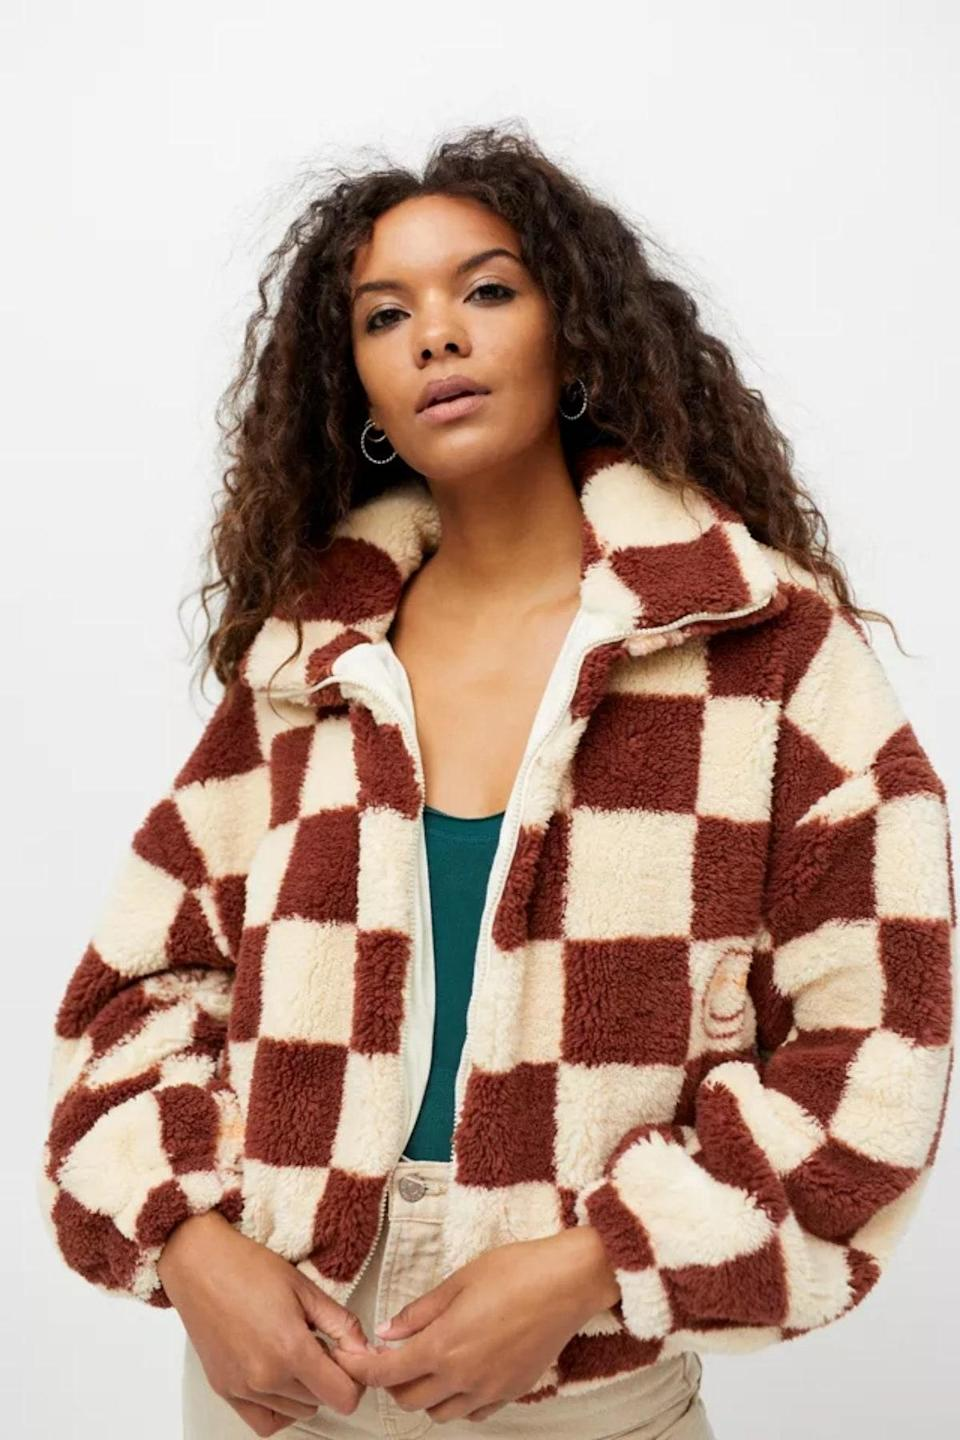 """Are we wrong to say you'll be dreaming about this checkerboard cutie tonight? $99, Urban Outfitters. <a href=""""https://www.urbanoutfitters.com/shop/uo-checkerboard-sherpa-fleece-jacket?color=029&type=REGULAR&quantity=1"""" rel=""""nofollow noopener"""" target=""""_blank"""" data-ylk=""""slk:Get it now!"""" class=""""link rapid-noclick-resp"""">Get it now!</a>"""